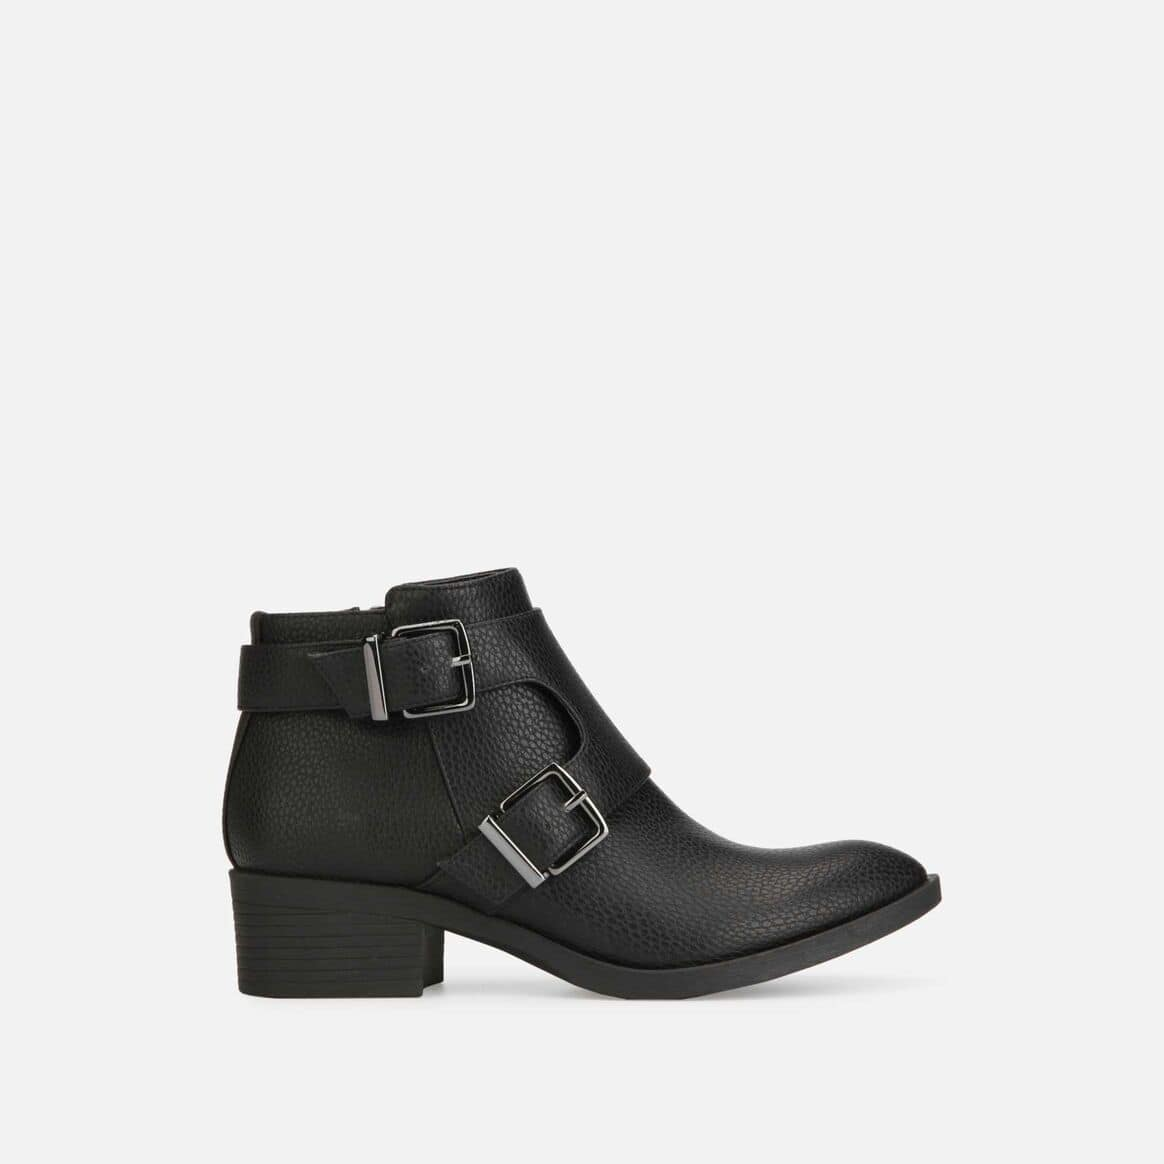 Kenneth Cole Shoes: Men's Vinny Driver Suede Loafer $12, Women's Re-Buckle Boot